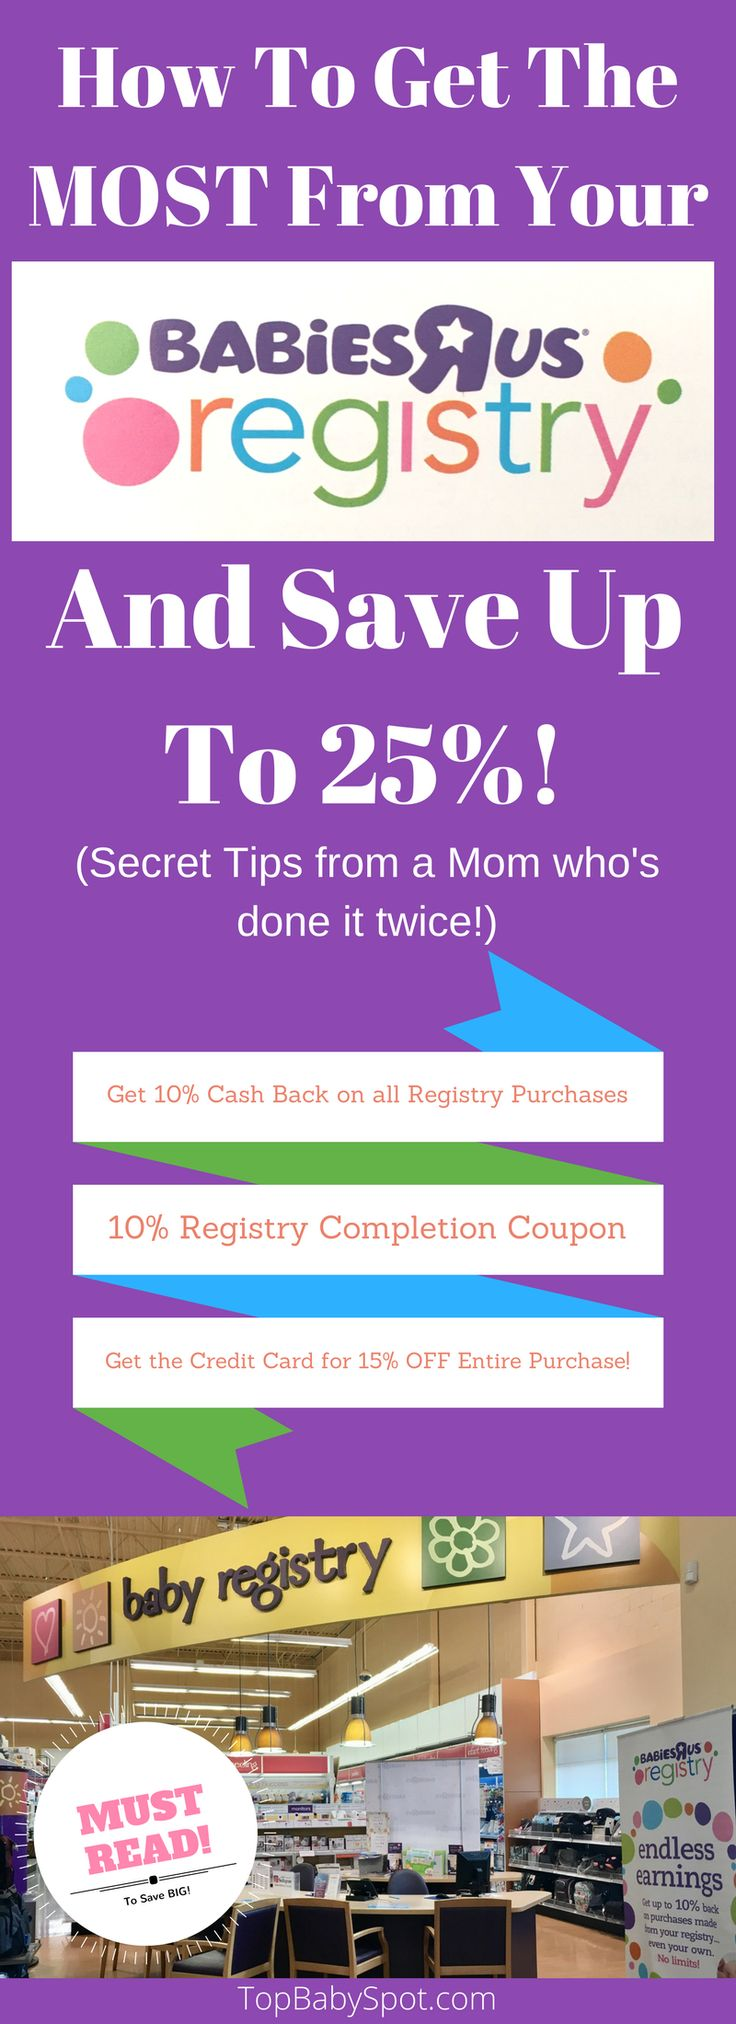 How To Get The MOST From Your Babies R Us Registry and Save Up to 25%!